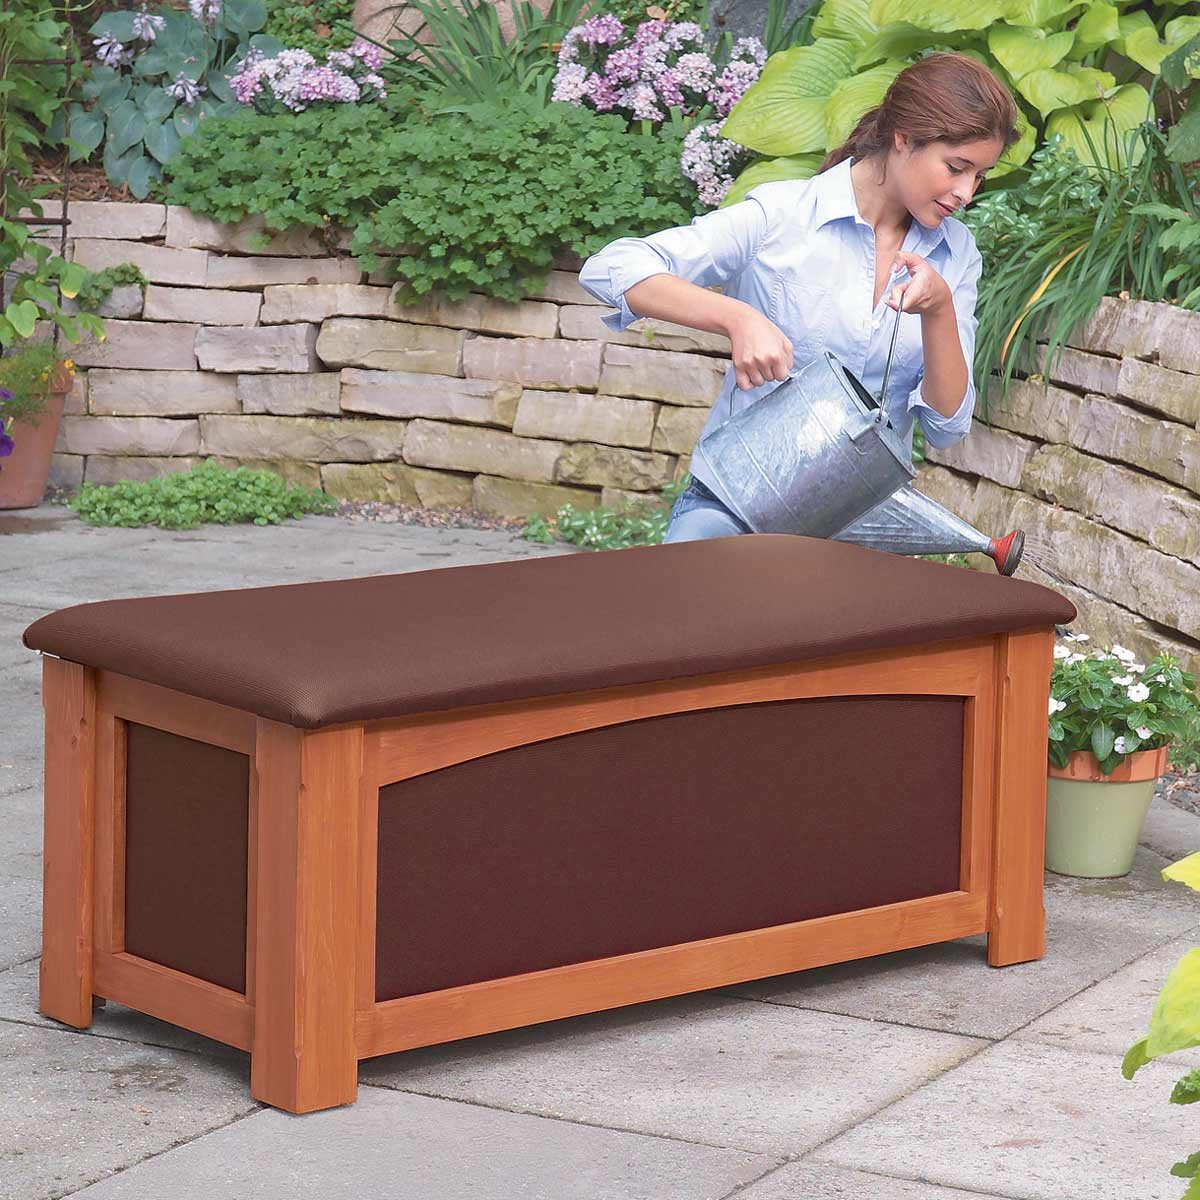 Brilliant How To Build An Outdoor Storage Bench The Family Handyman Gmtry Best Dining Table And Chair Ideas Images Gmtryco